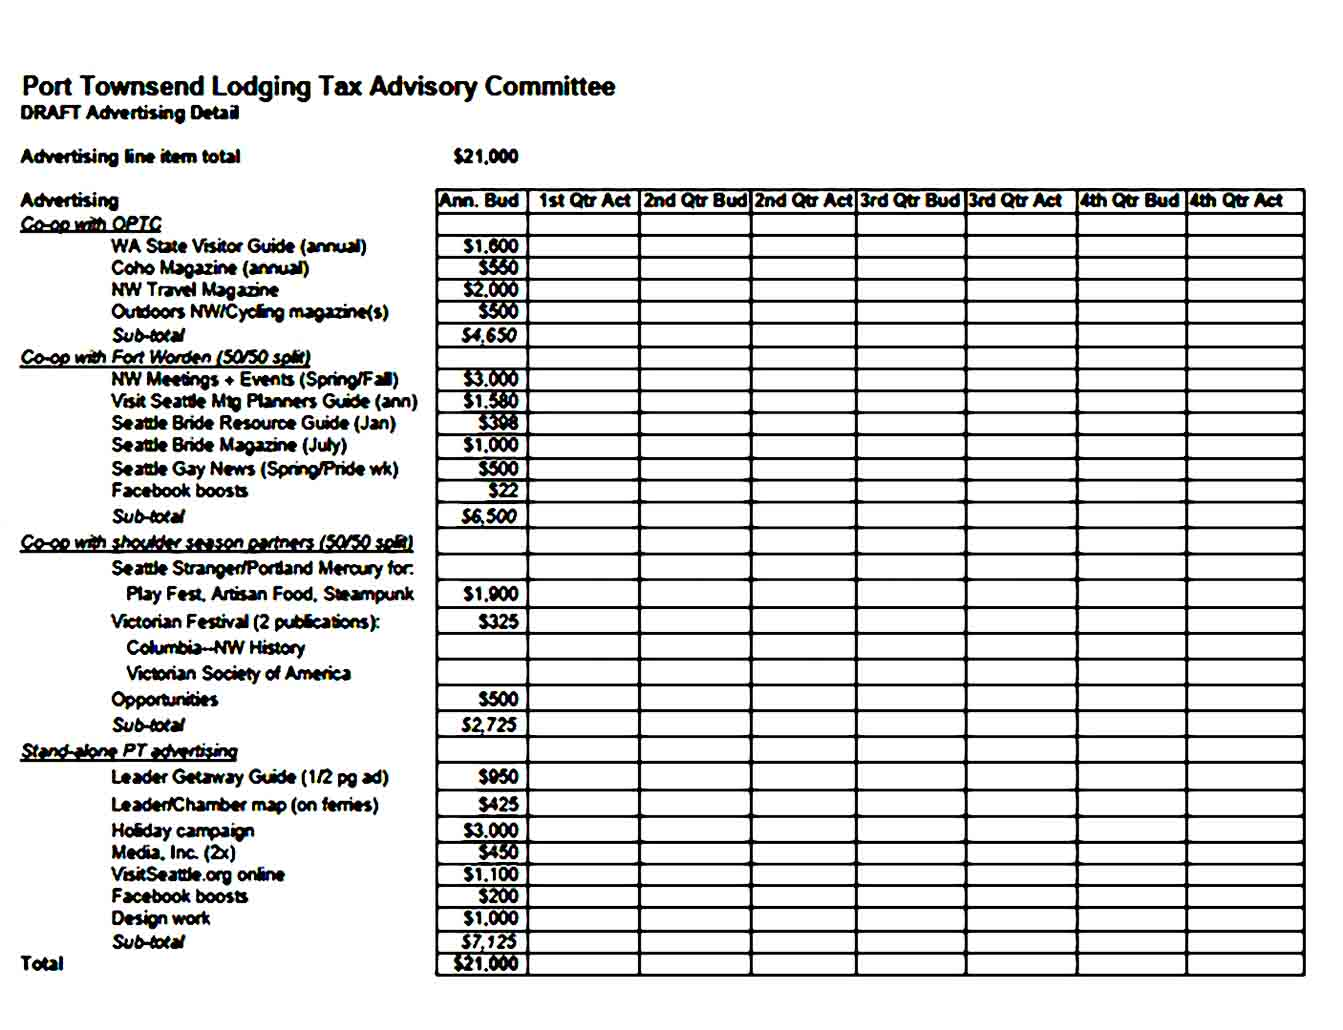 Committee Budget